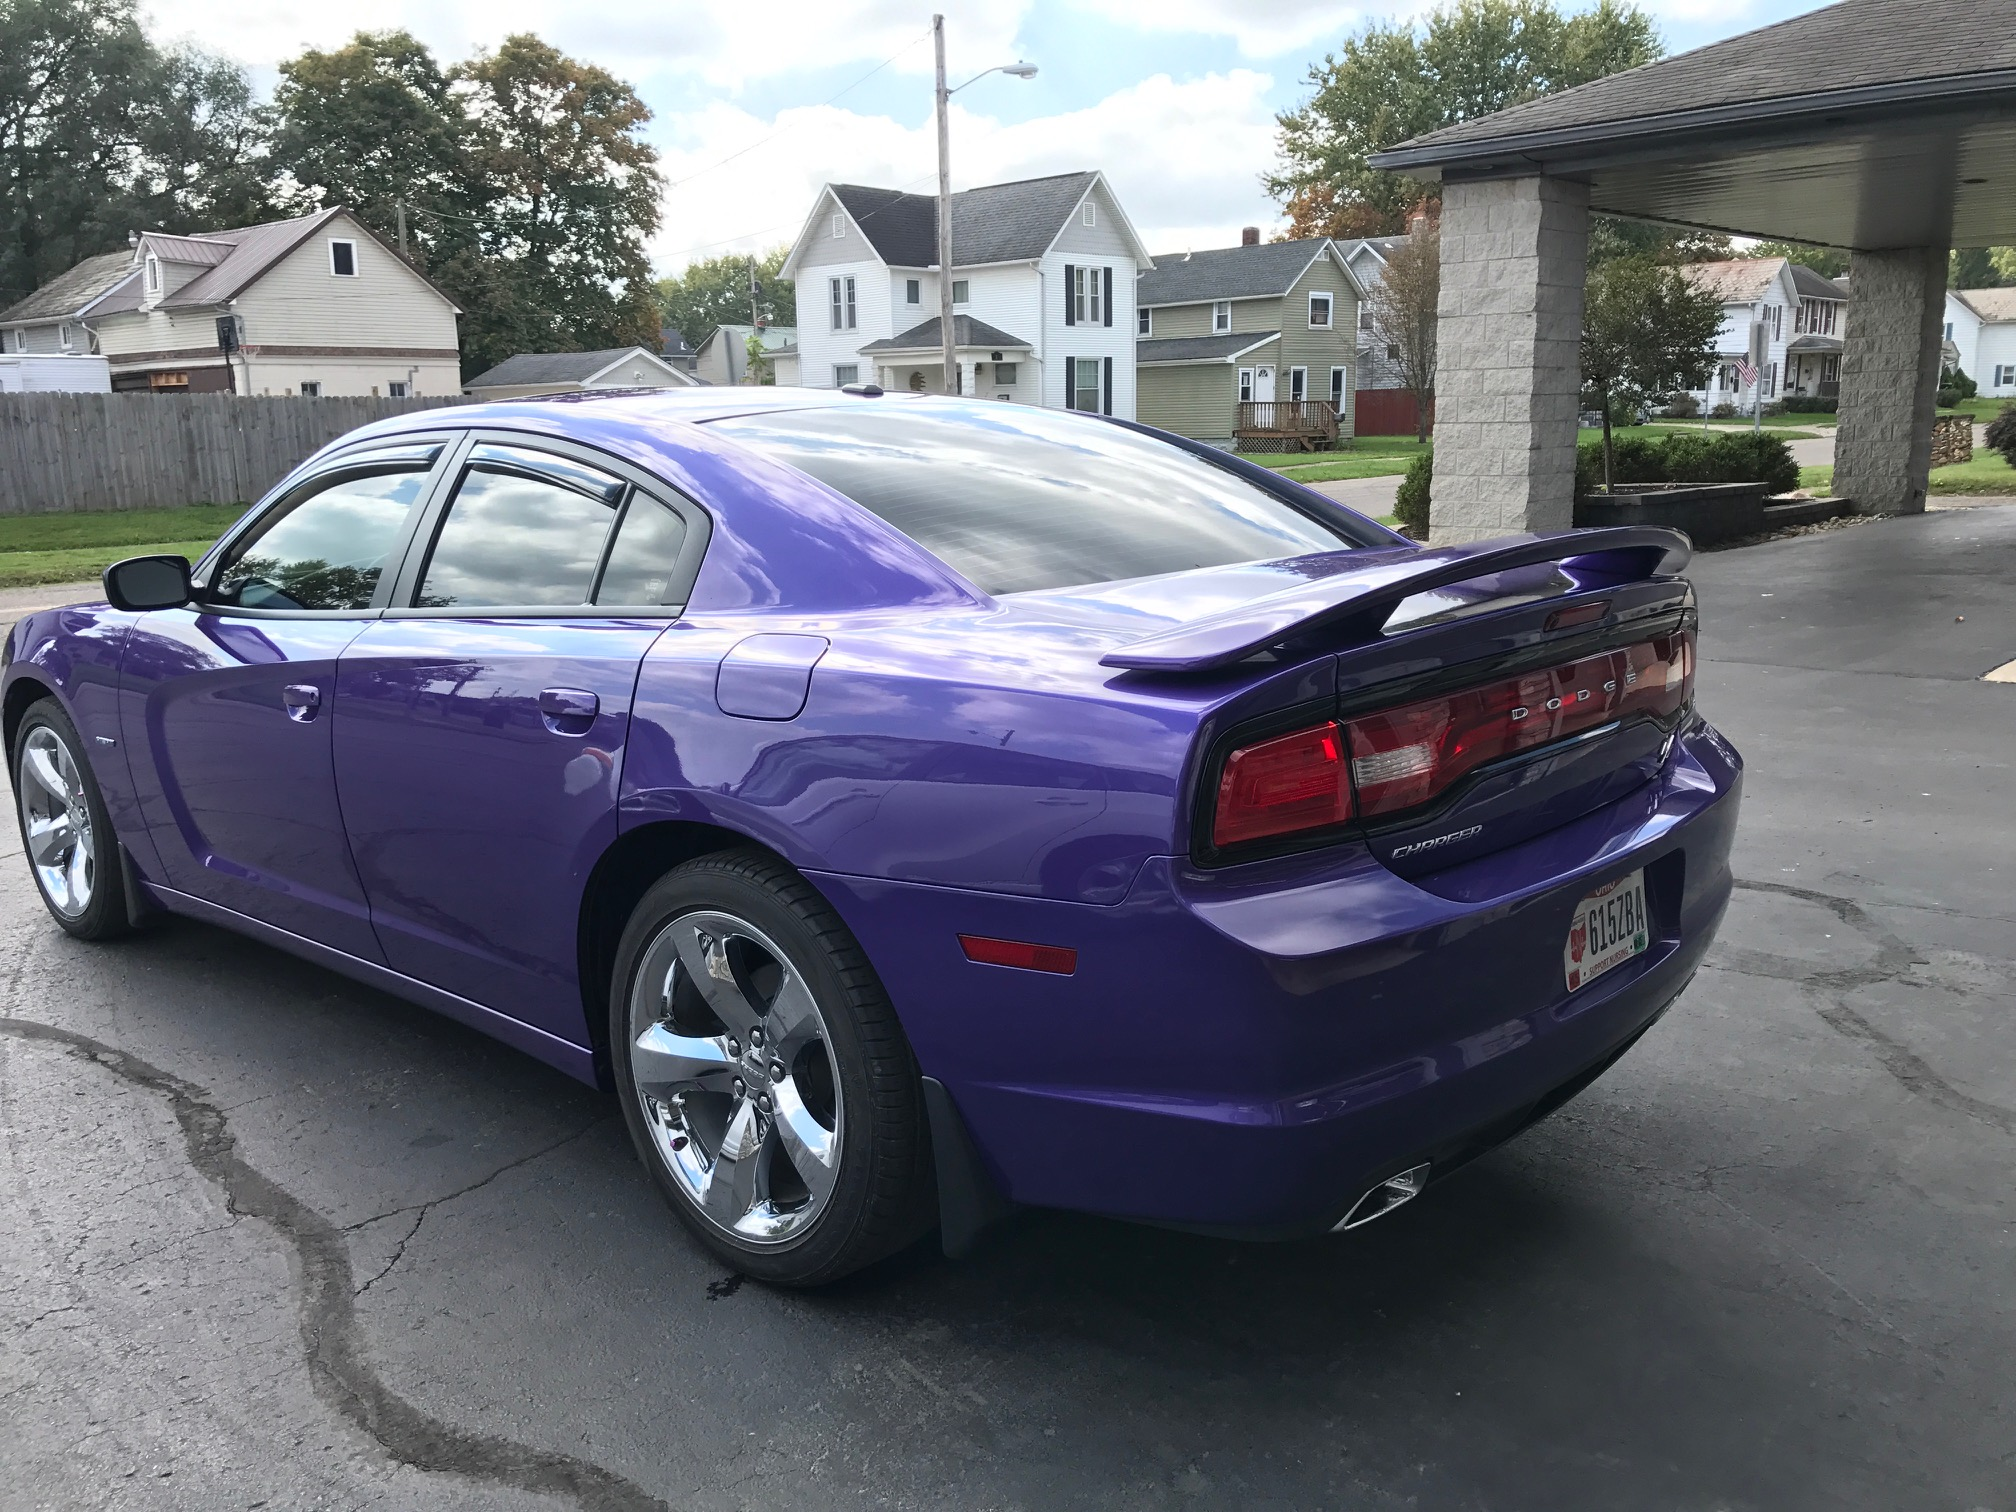 14 DODGE CHARGER A3.JPG